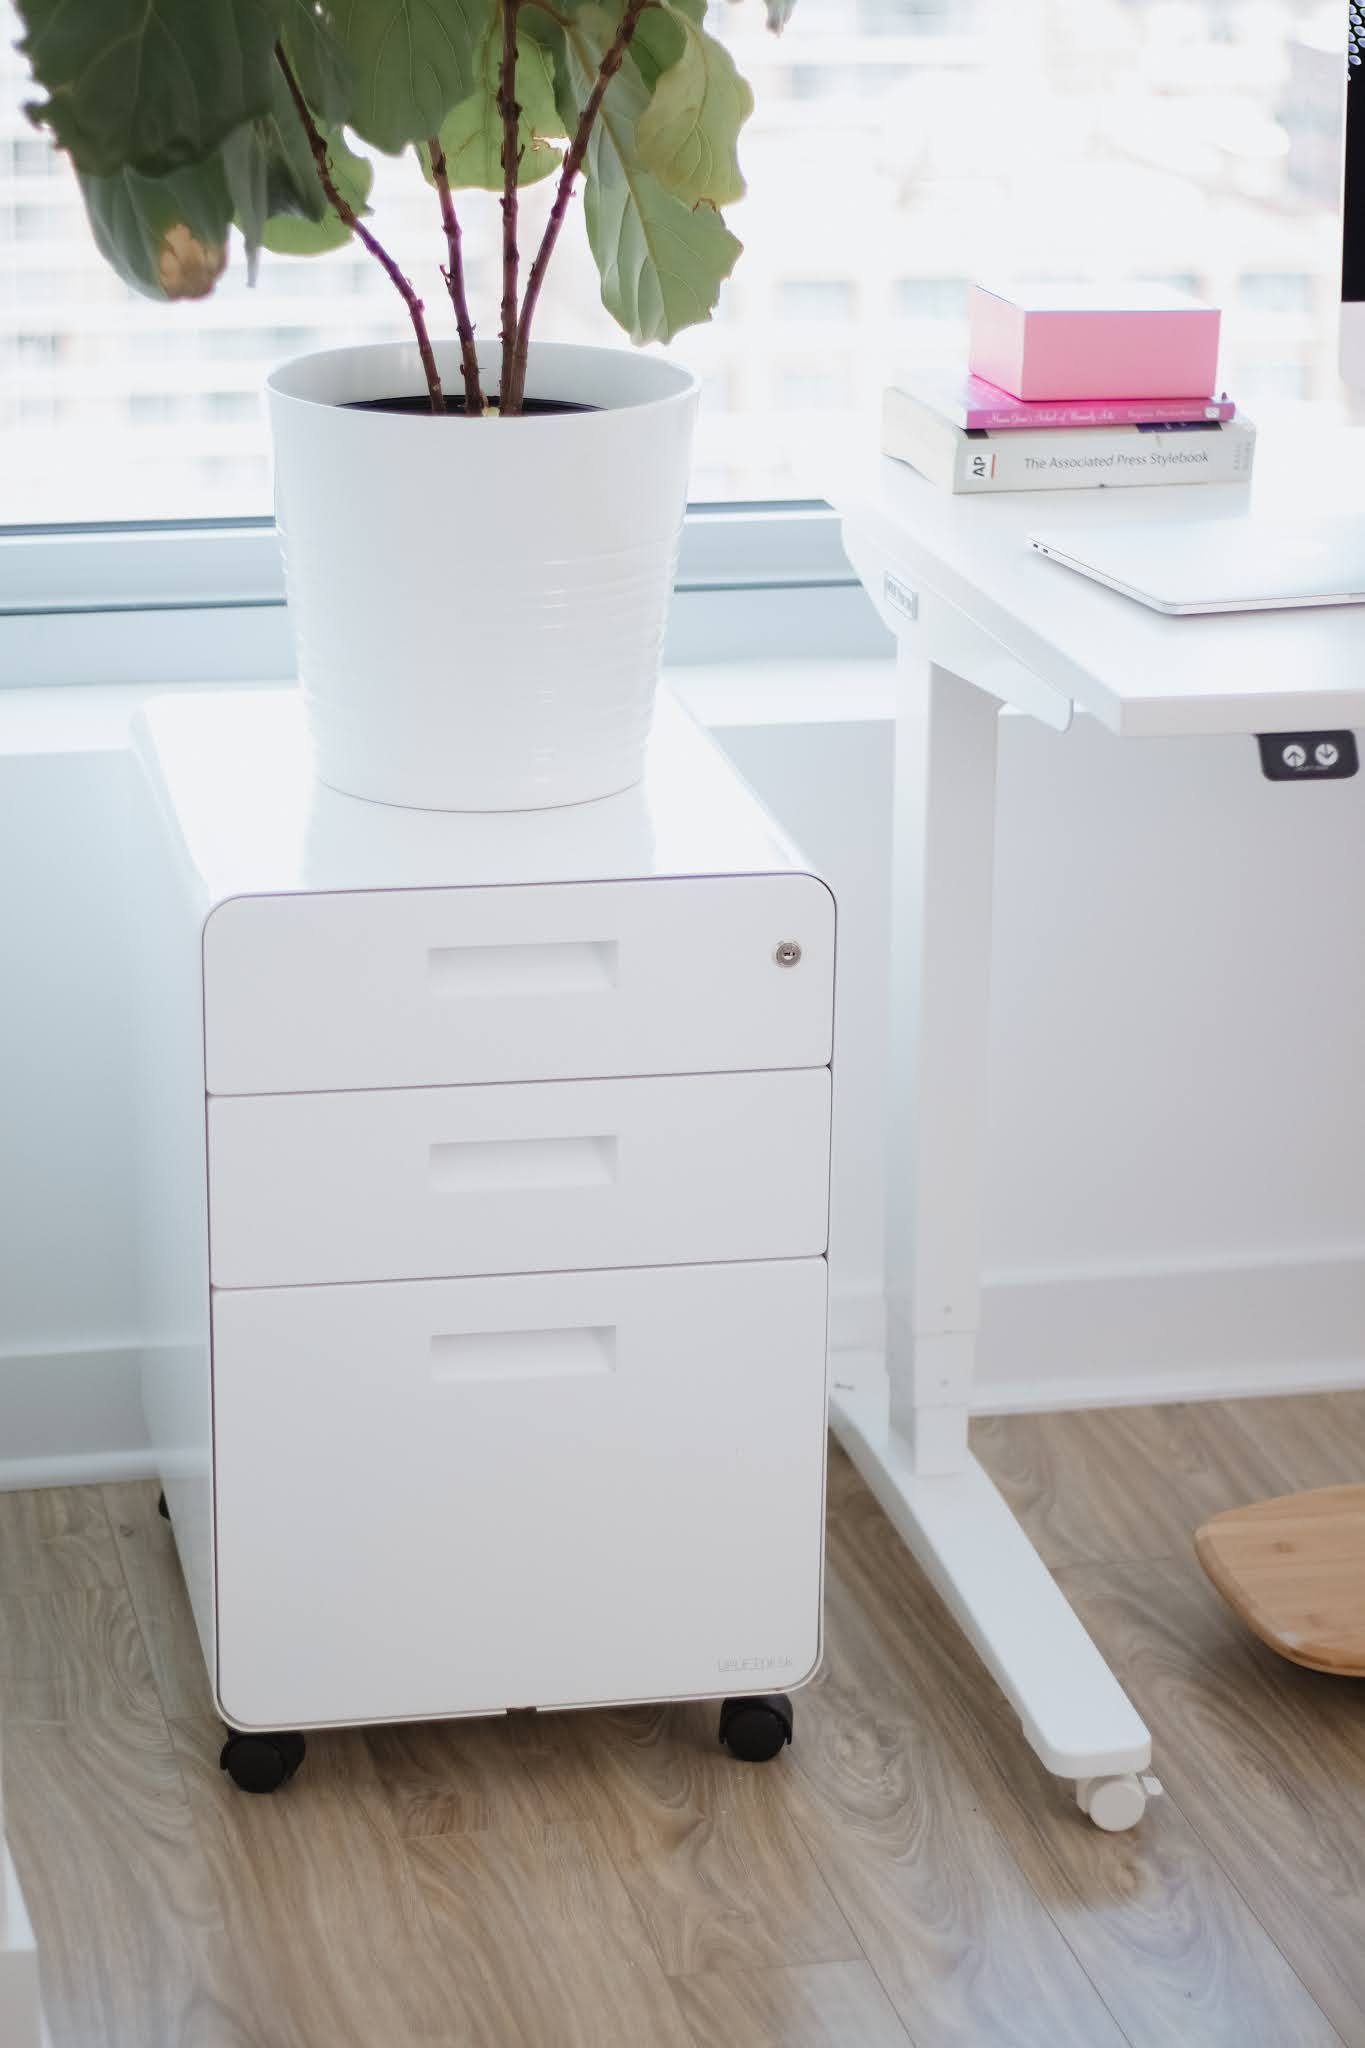 Natalie in the City reviews the best electric standing desk 2021 for the home office.